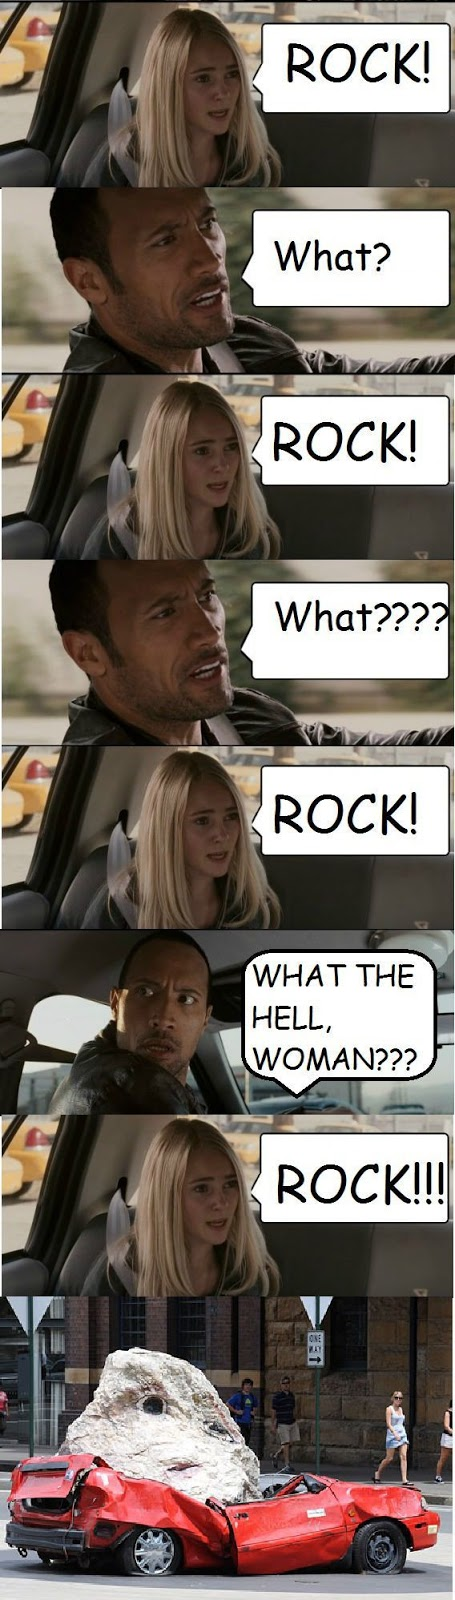 The Rock Never Listened To What The Girl Really Meant!